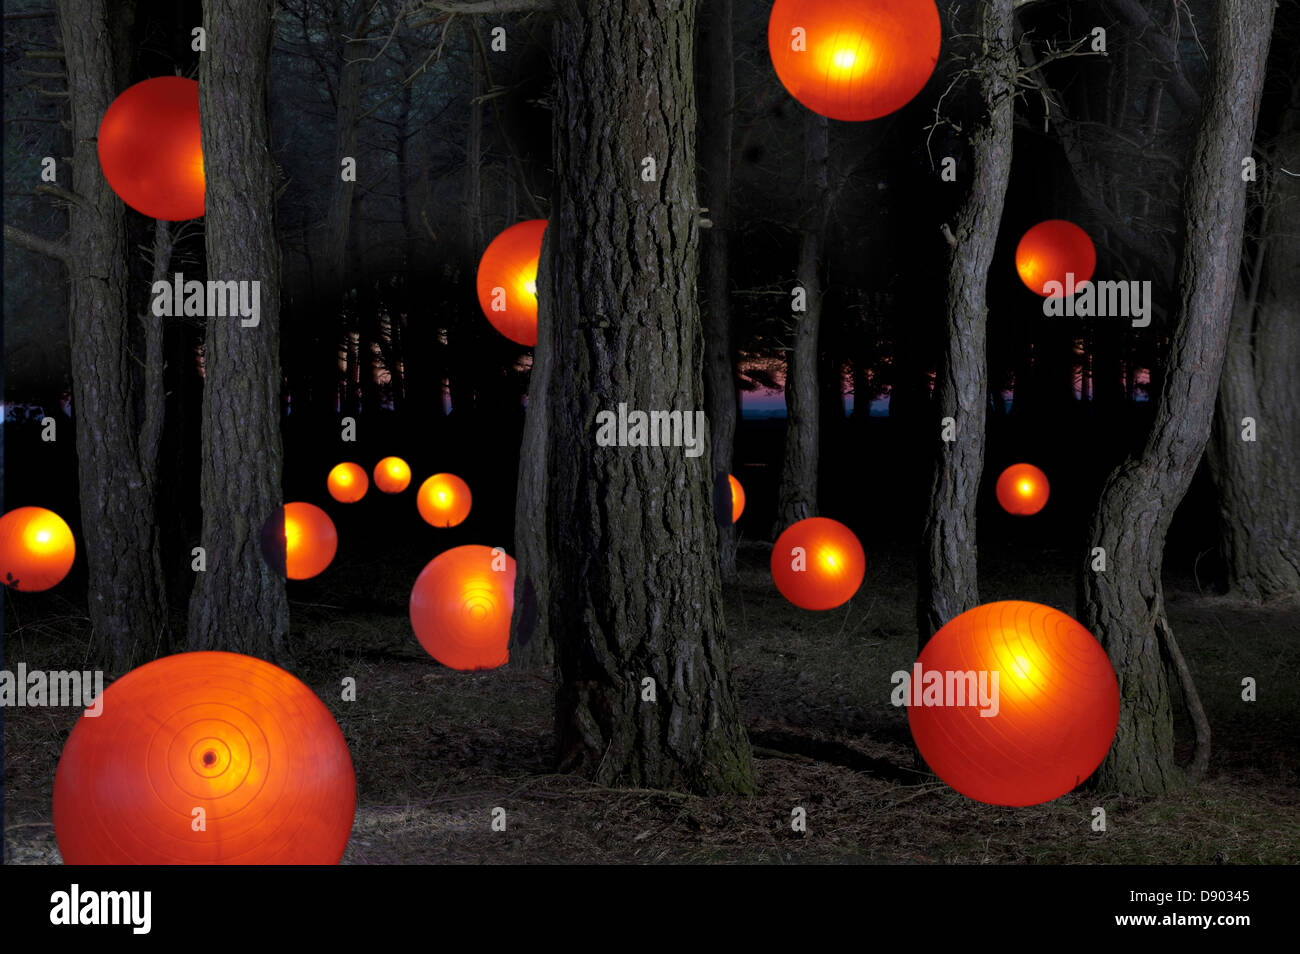 Glowing orange balls by trees in forest, a mystical abstract meaningful concept - Stock Image